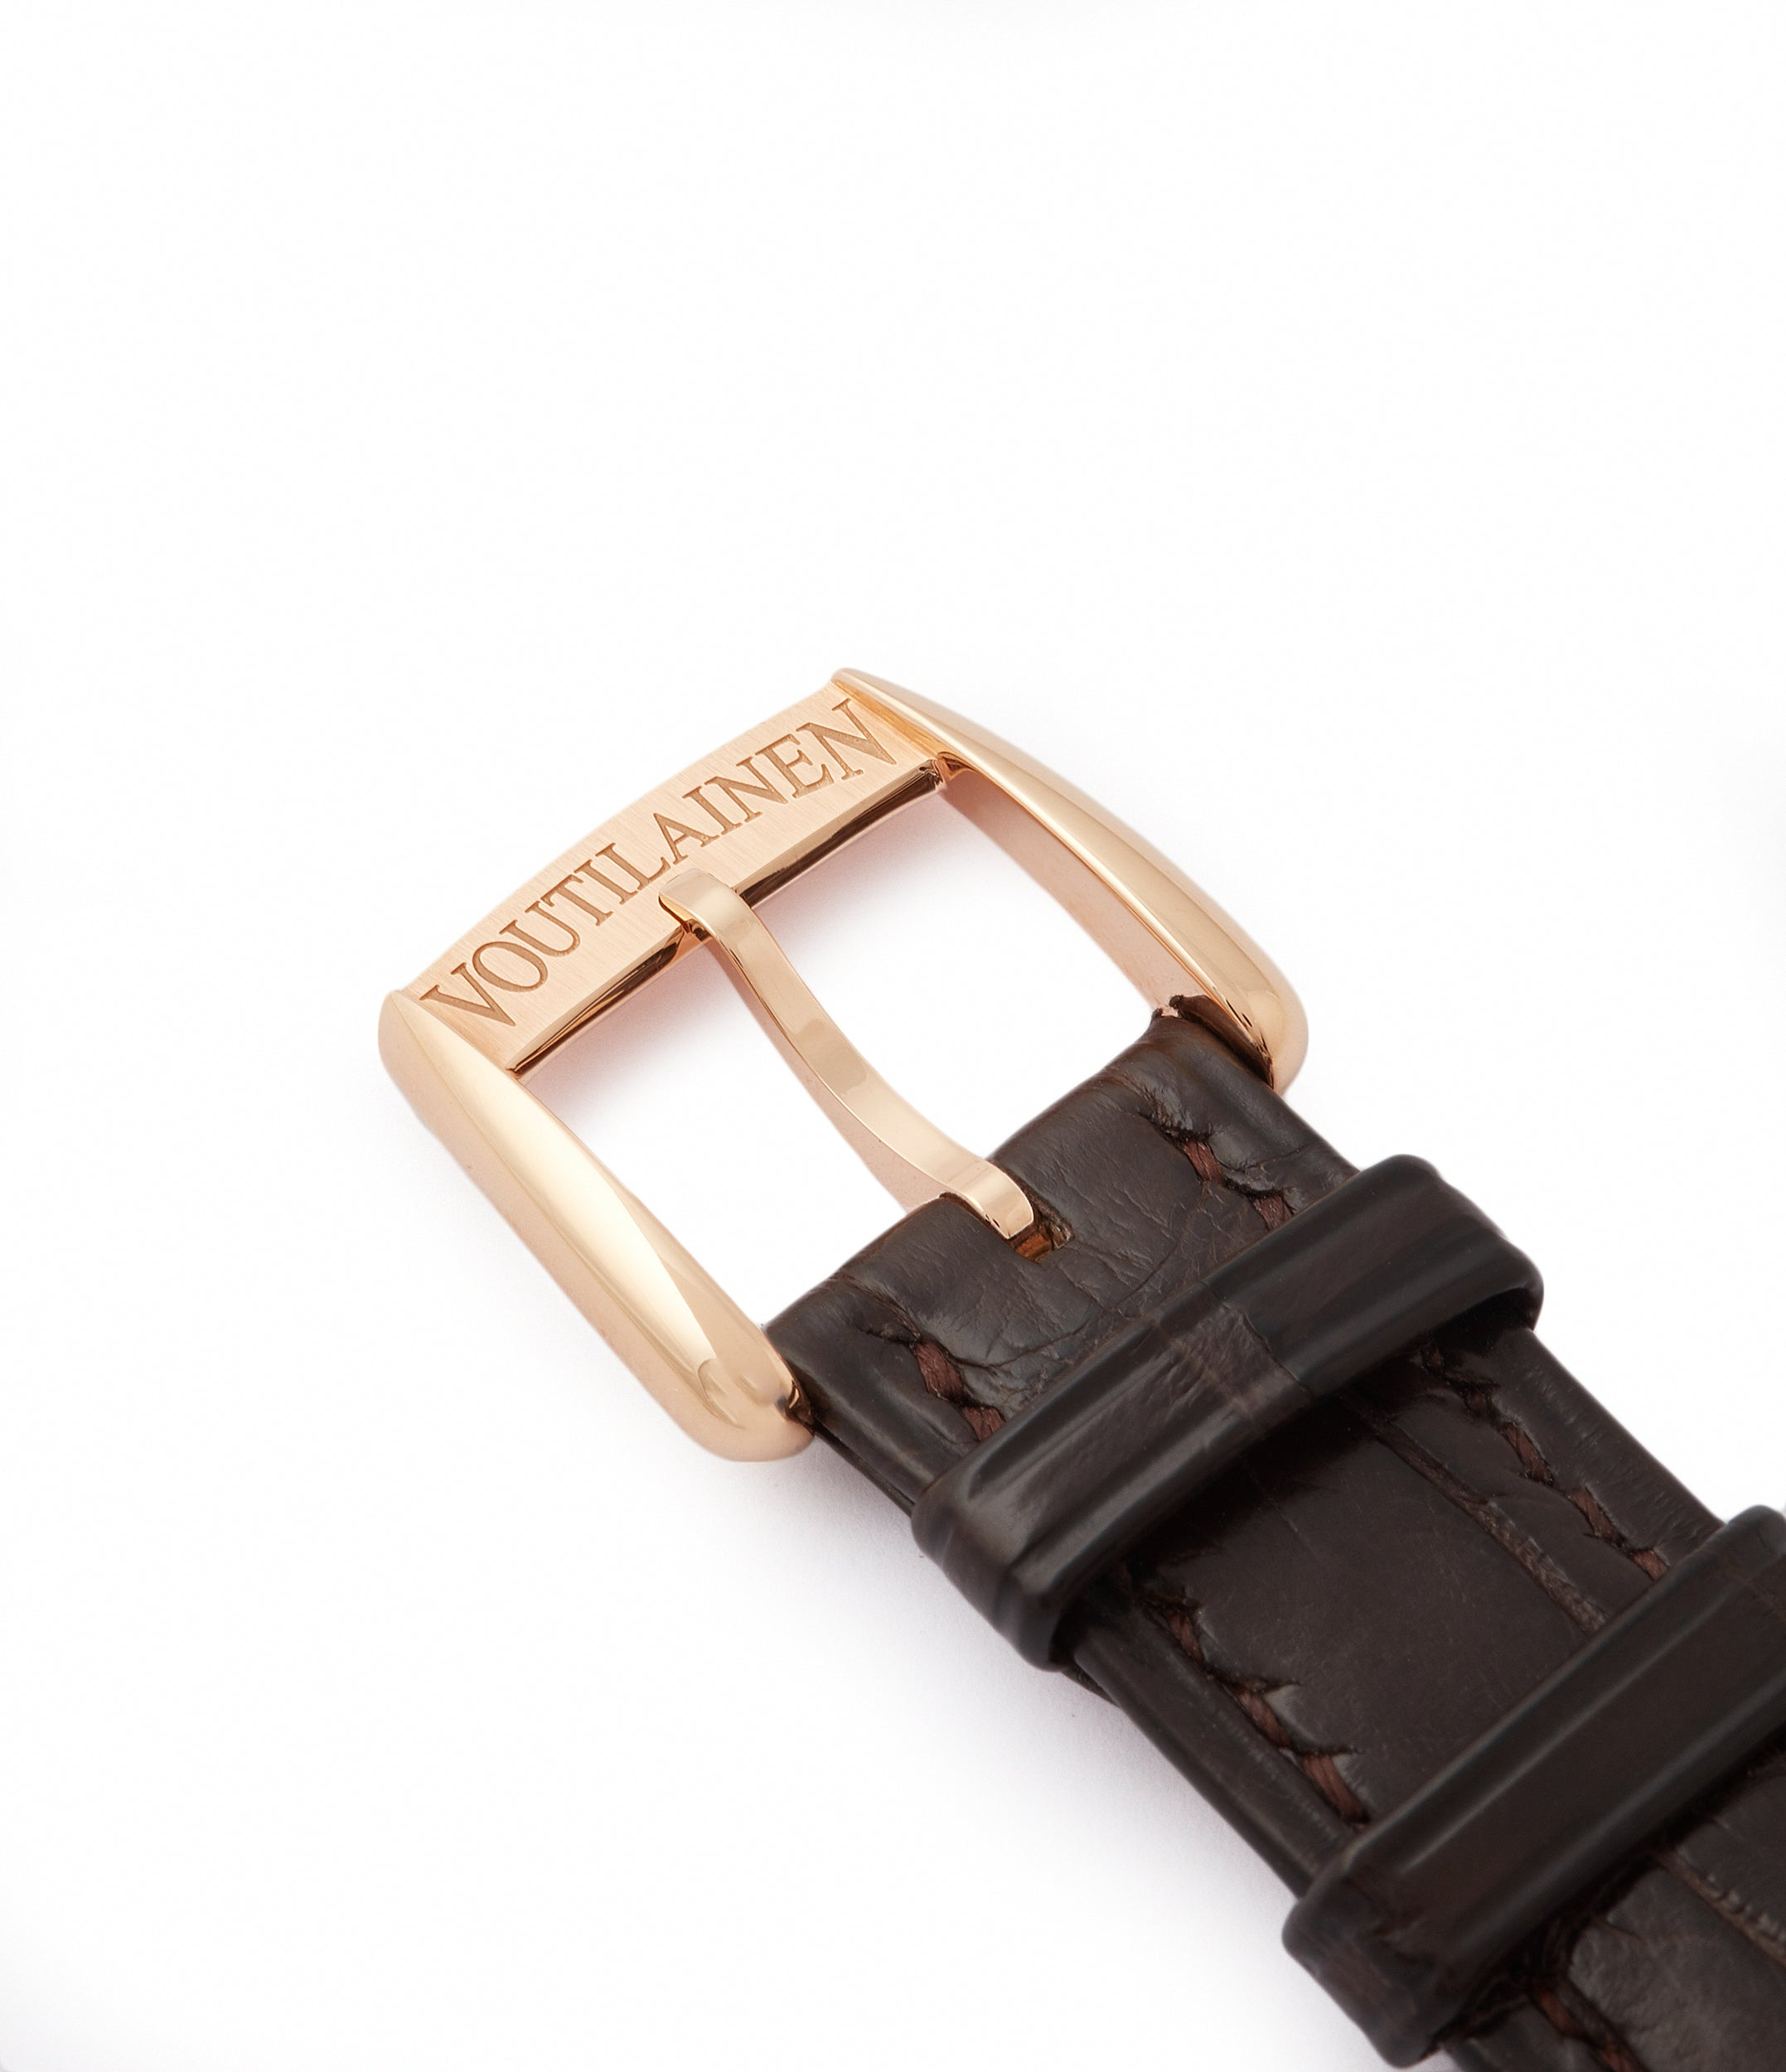 rose gold Voutilainen buckle Vingt-8 rose gold dress watch with brown guilloche dial for sale at A Collected Man London approved re-seller of preowned Voutilainen watches